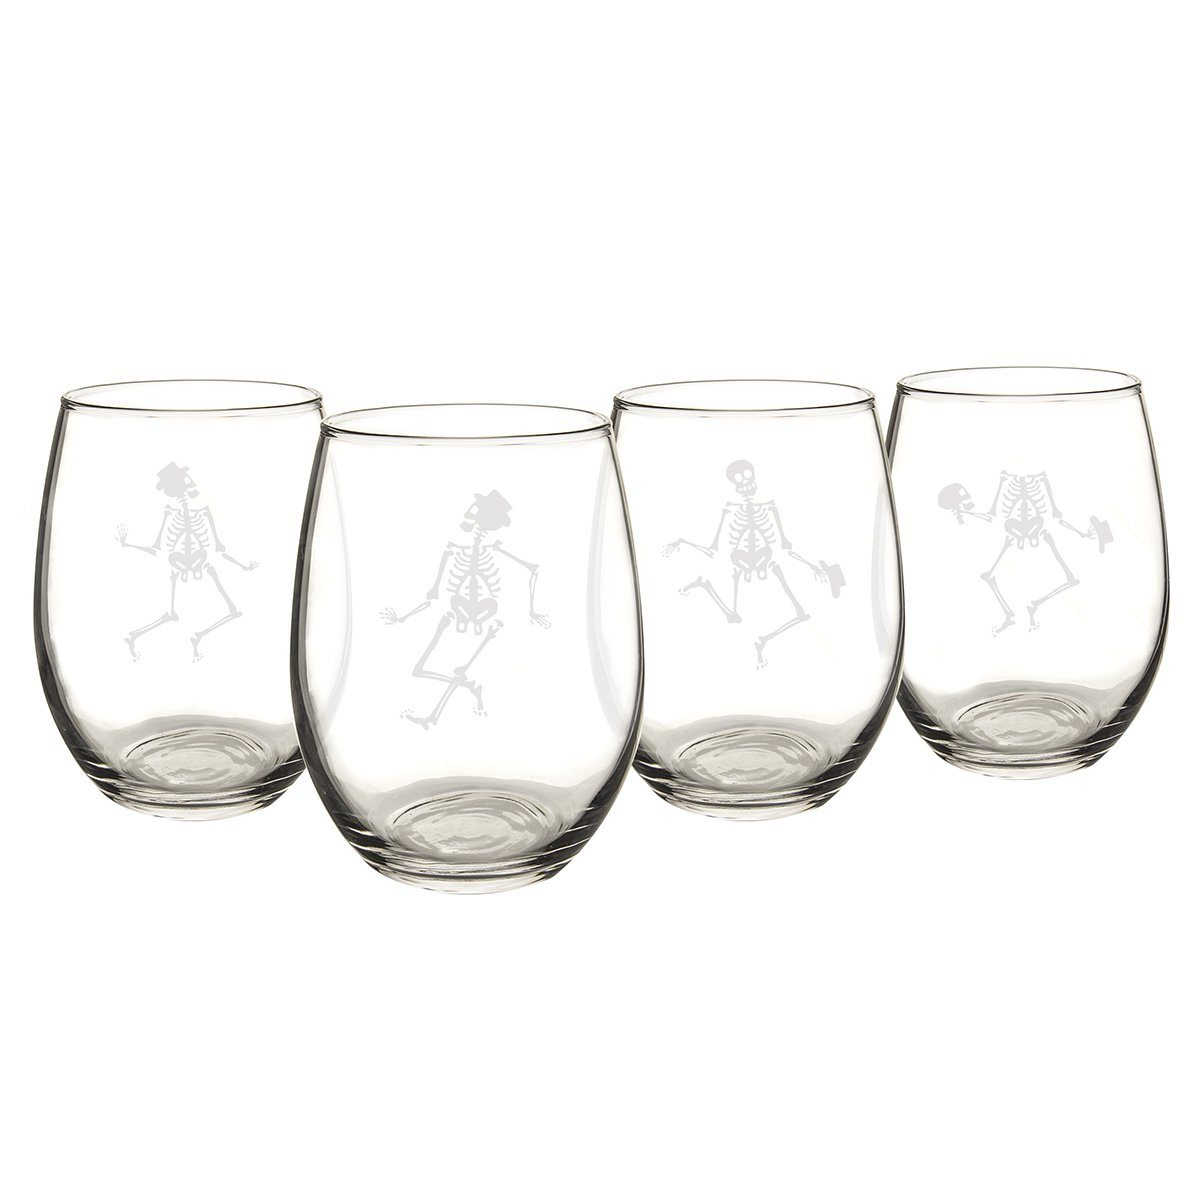 Dancing Skeletons Stemless Wine Glasses (Set of 4) - Cece & Me - Home and Gifts